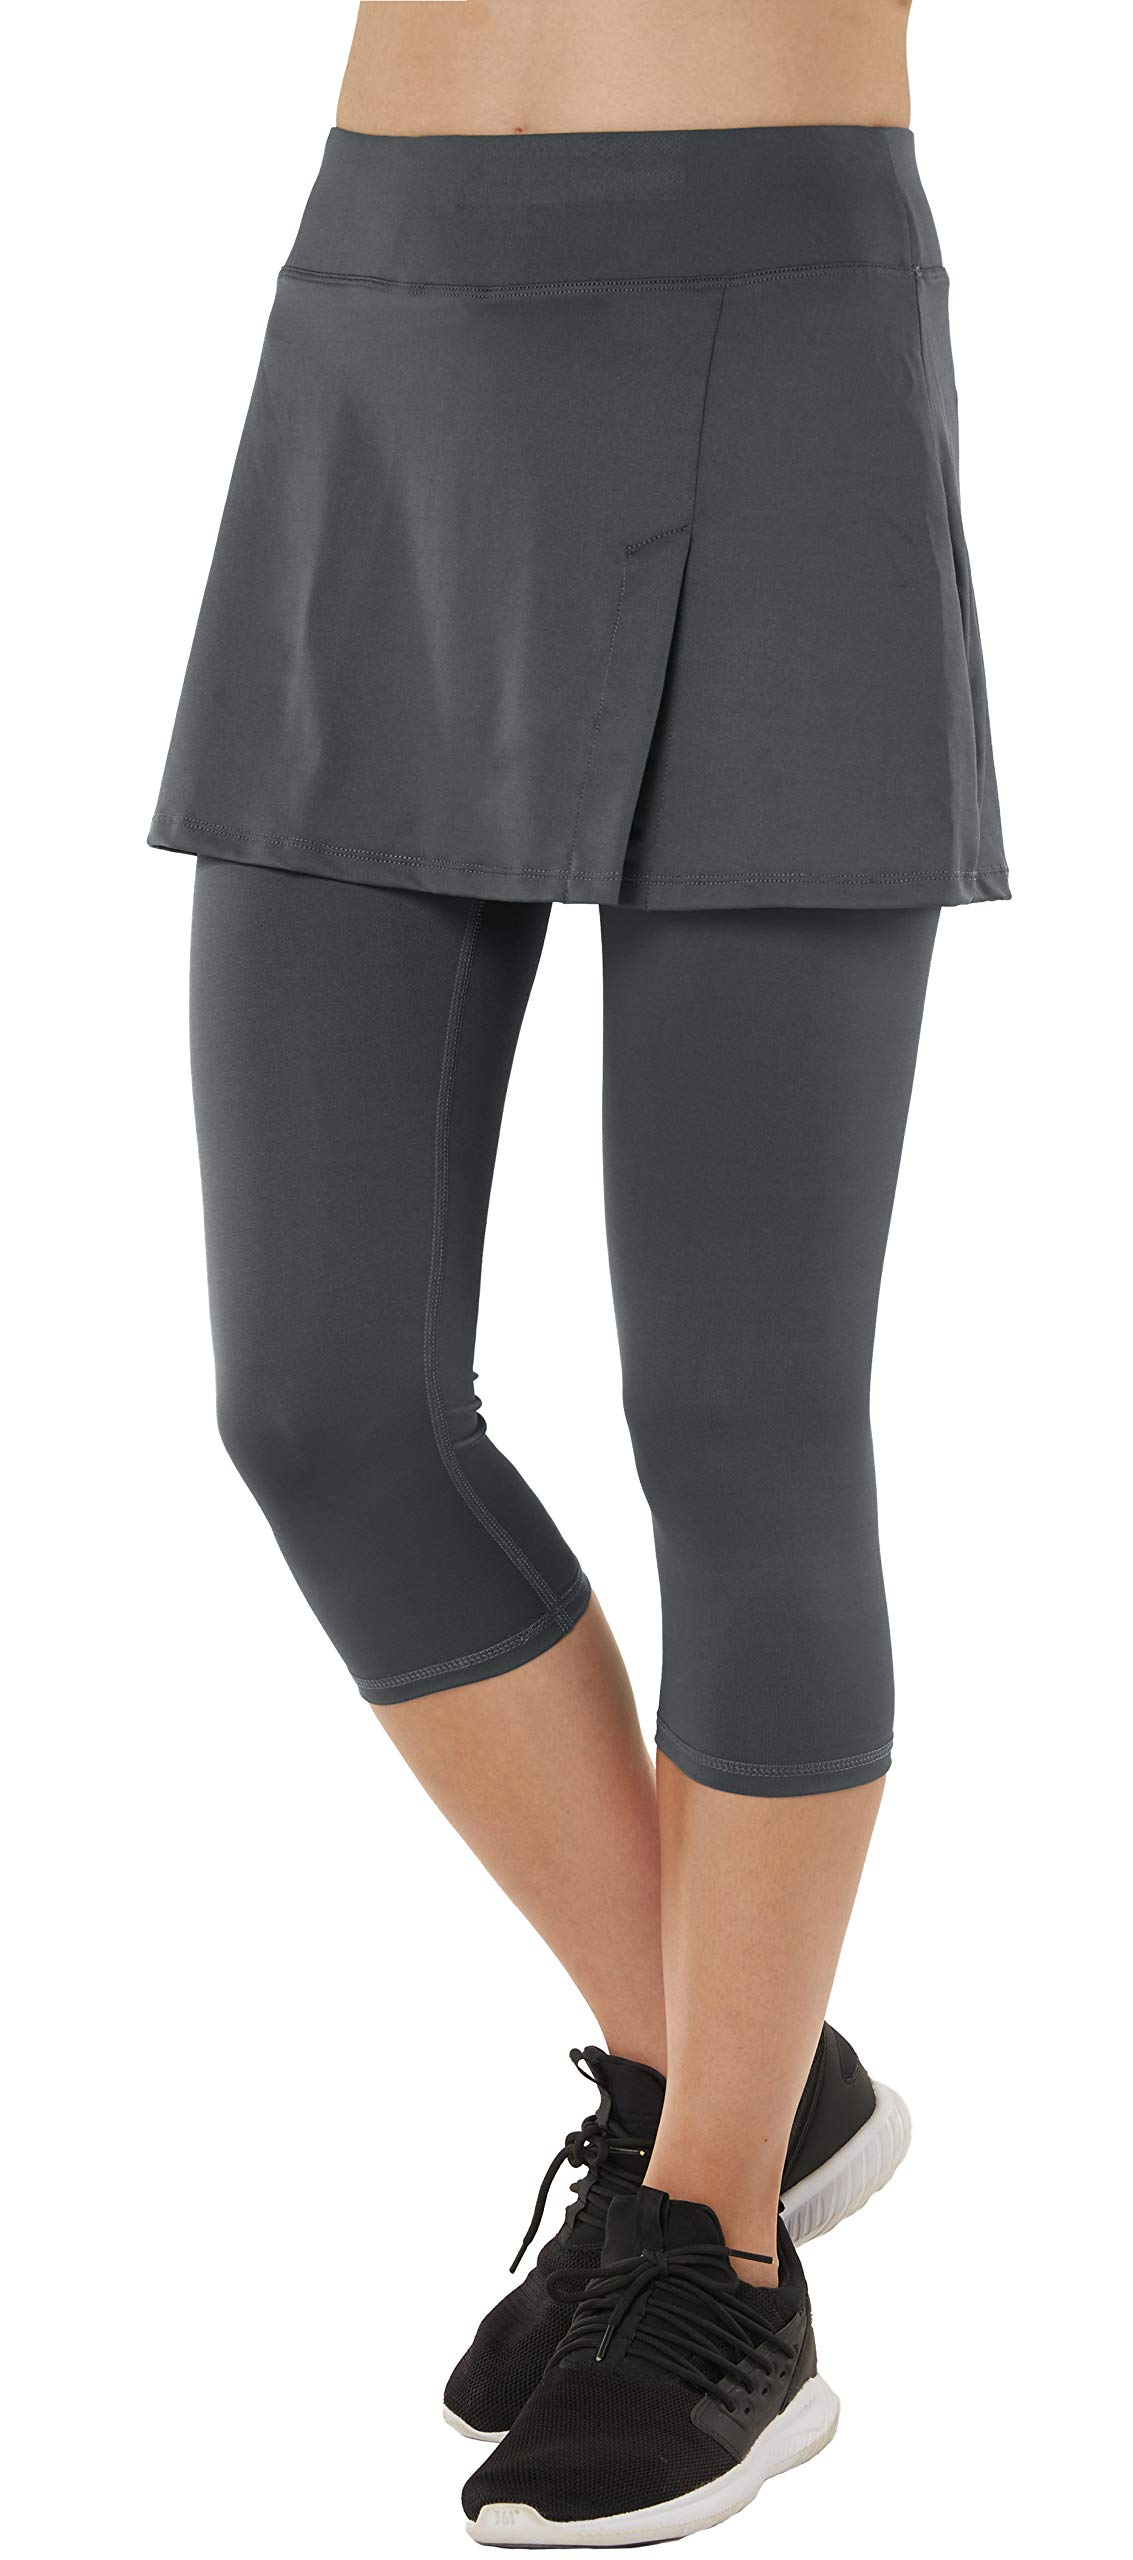 Womens Sport Skapri with Pockets Slit Side Skirt with Built-in Capri Legging Grey XS by slimour